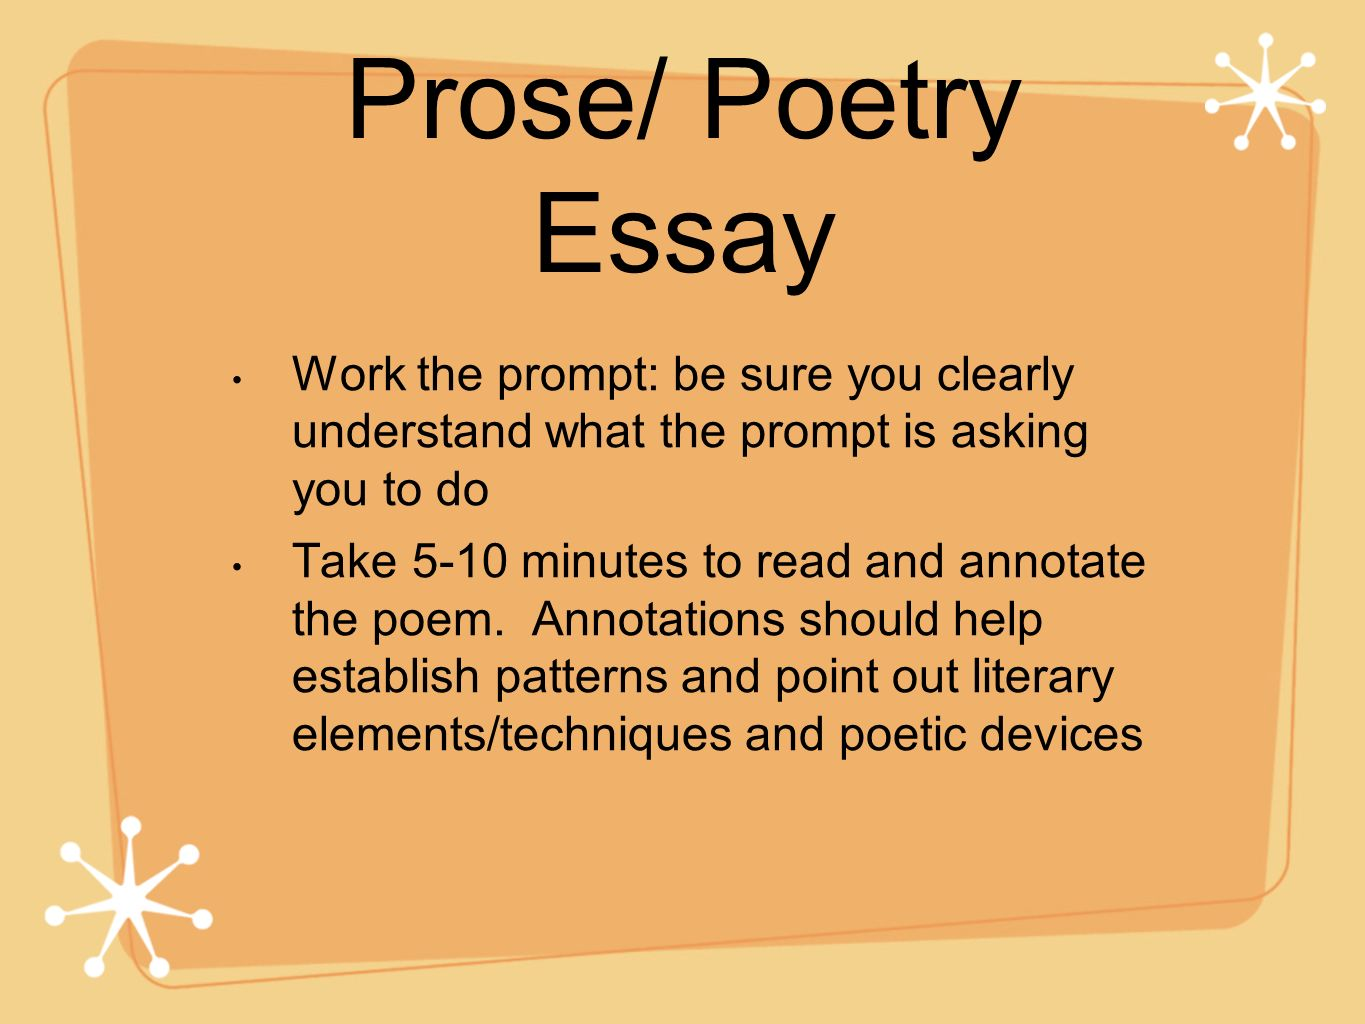 essay prompts for lord of the flies Essay on lord of the flies: free examples of essays, research and term papers examples of lord of the flies essay topics, questions and thesis satatements.